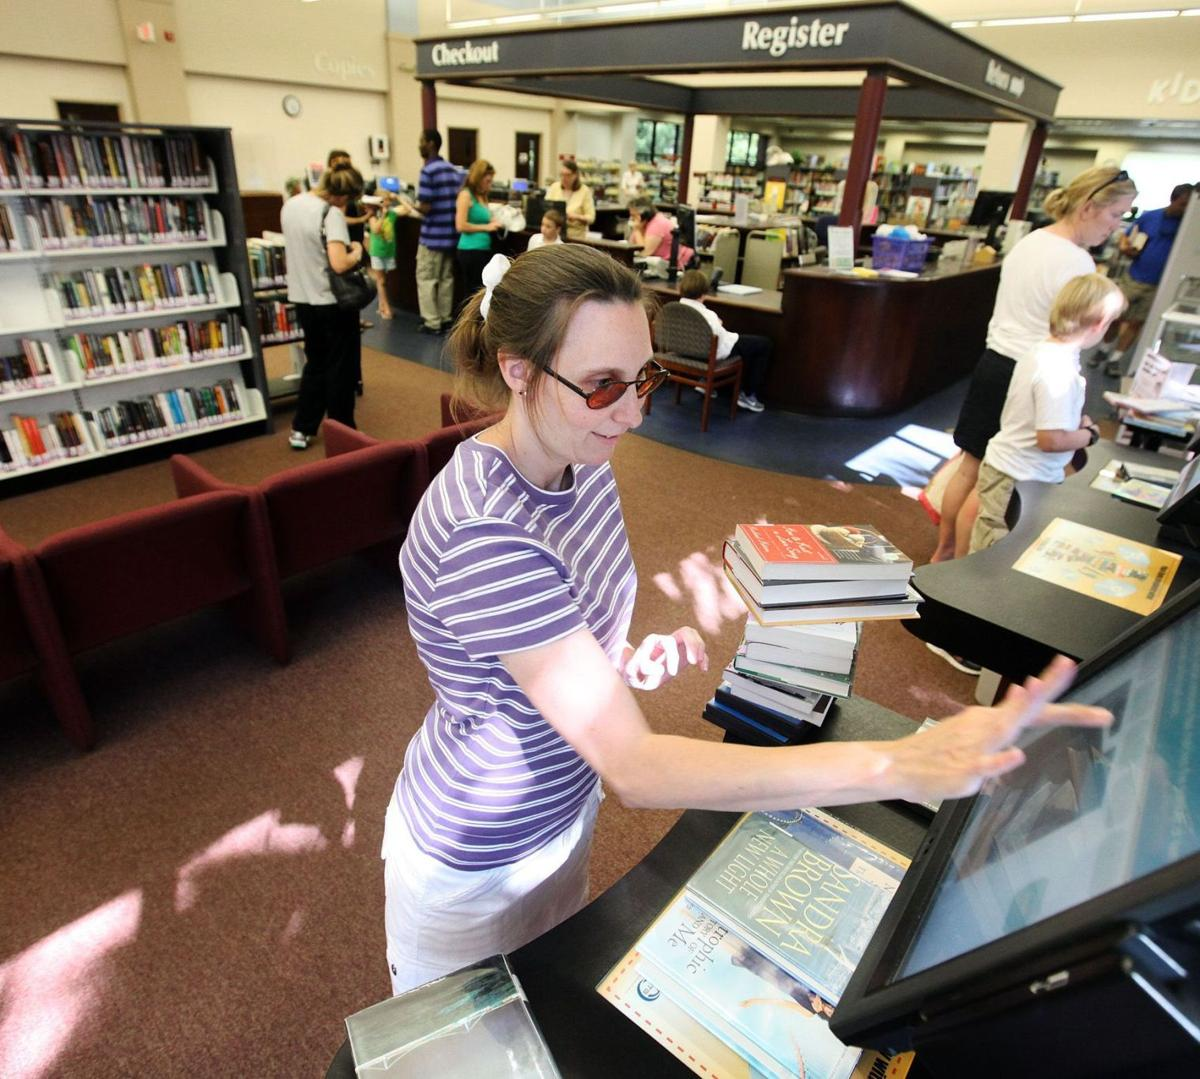 Charleston County residents love their libraries, but buildings need work